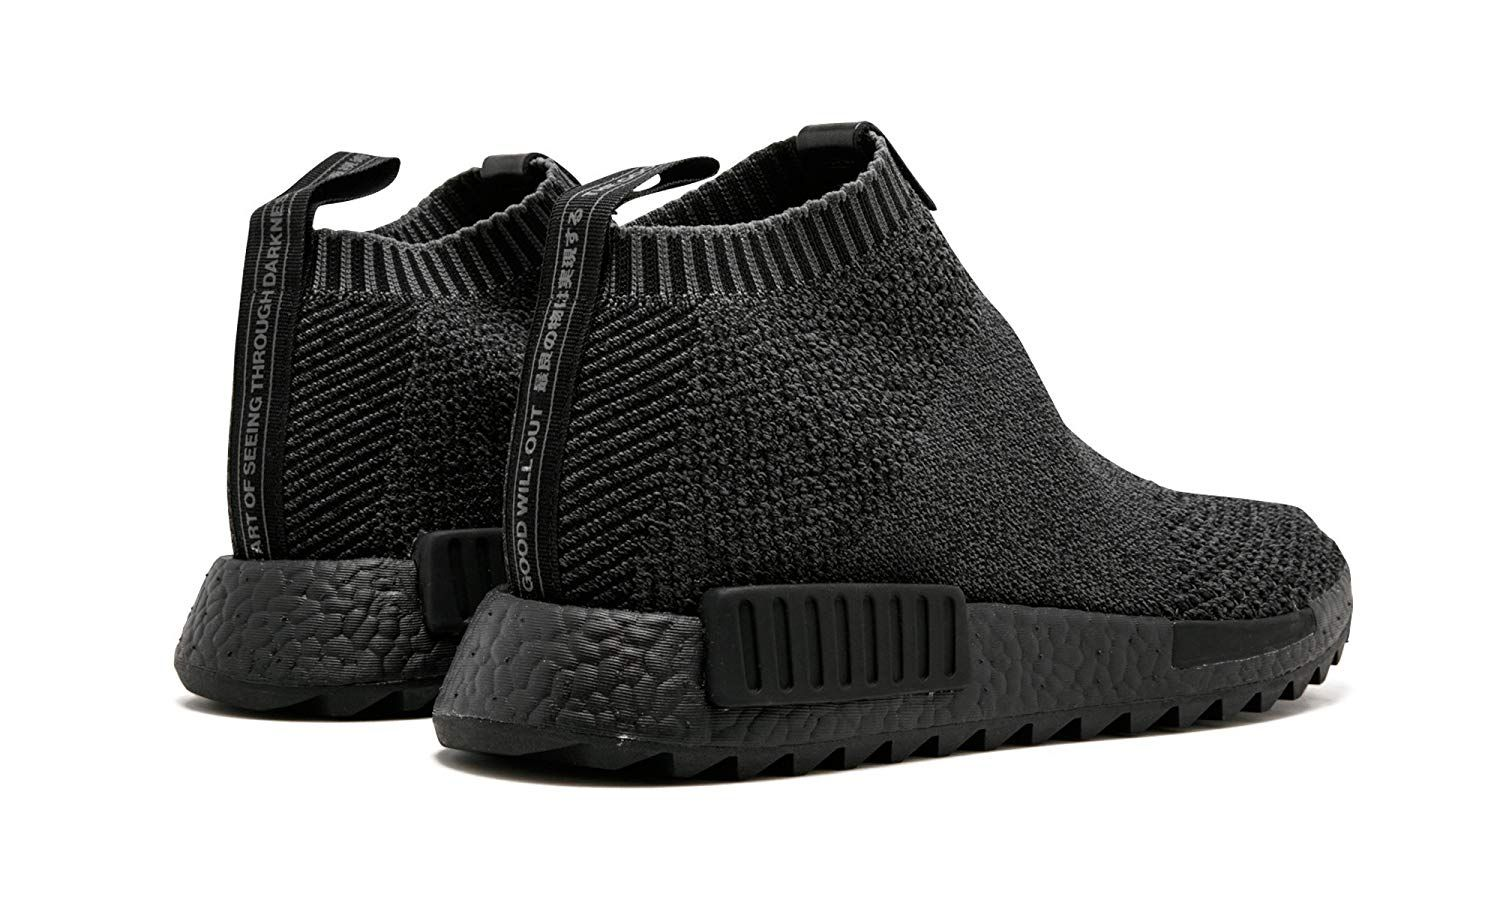 076a11cf8 Adidas NMD CS1 City Sock PK Primeknit x TGWO The Good Will Out - Black  Trainer